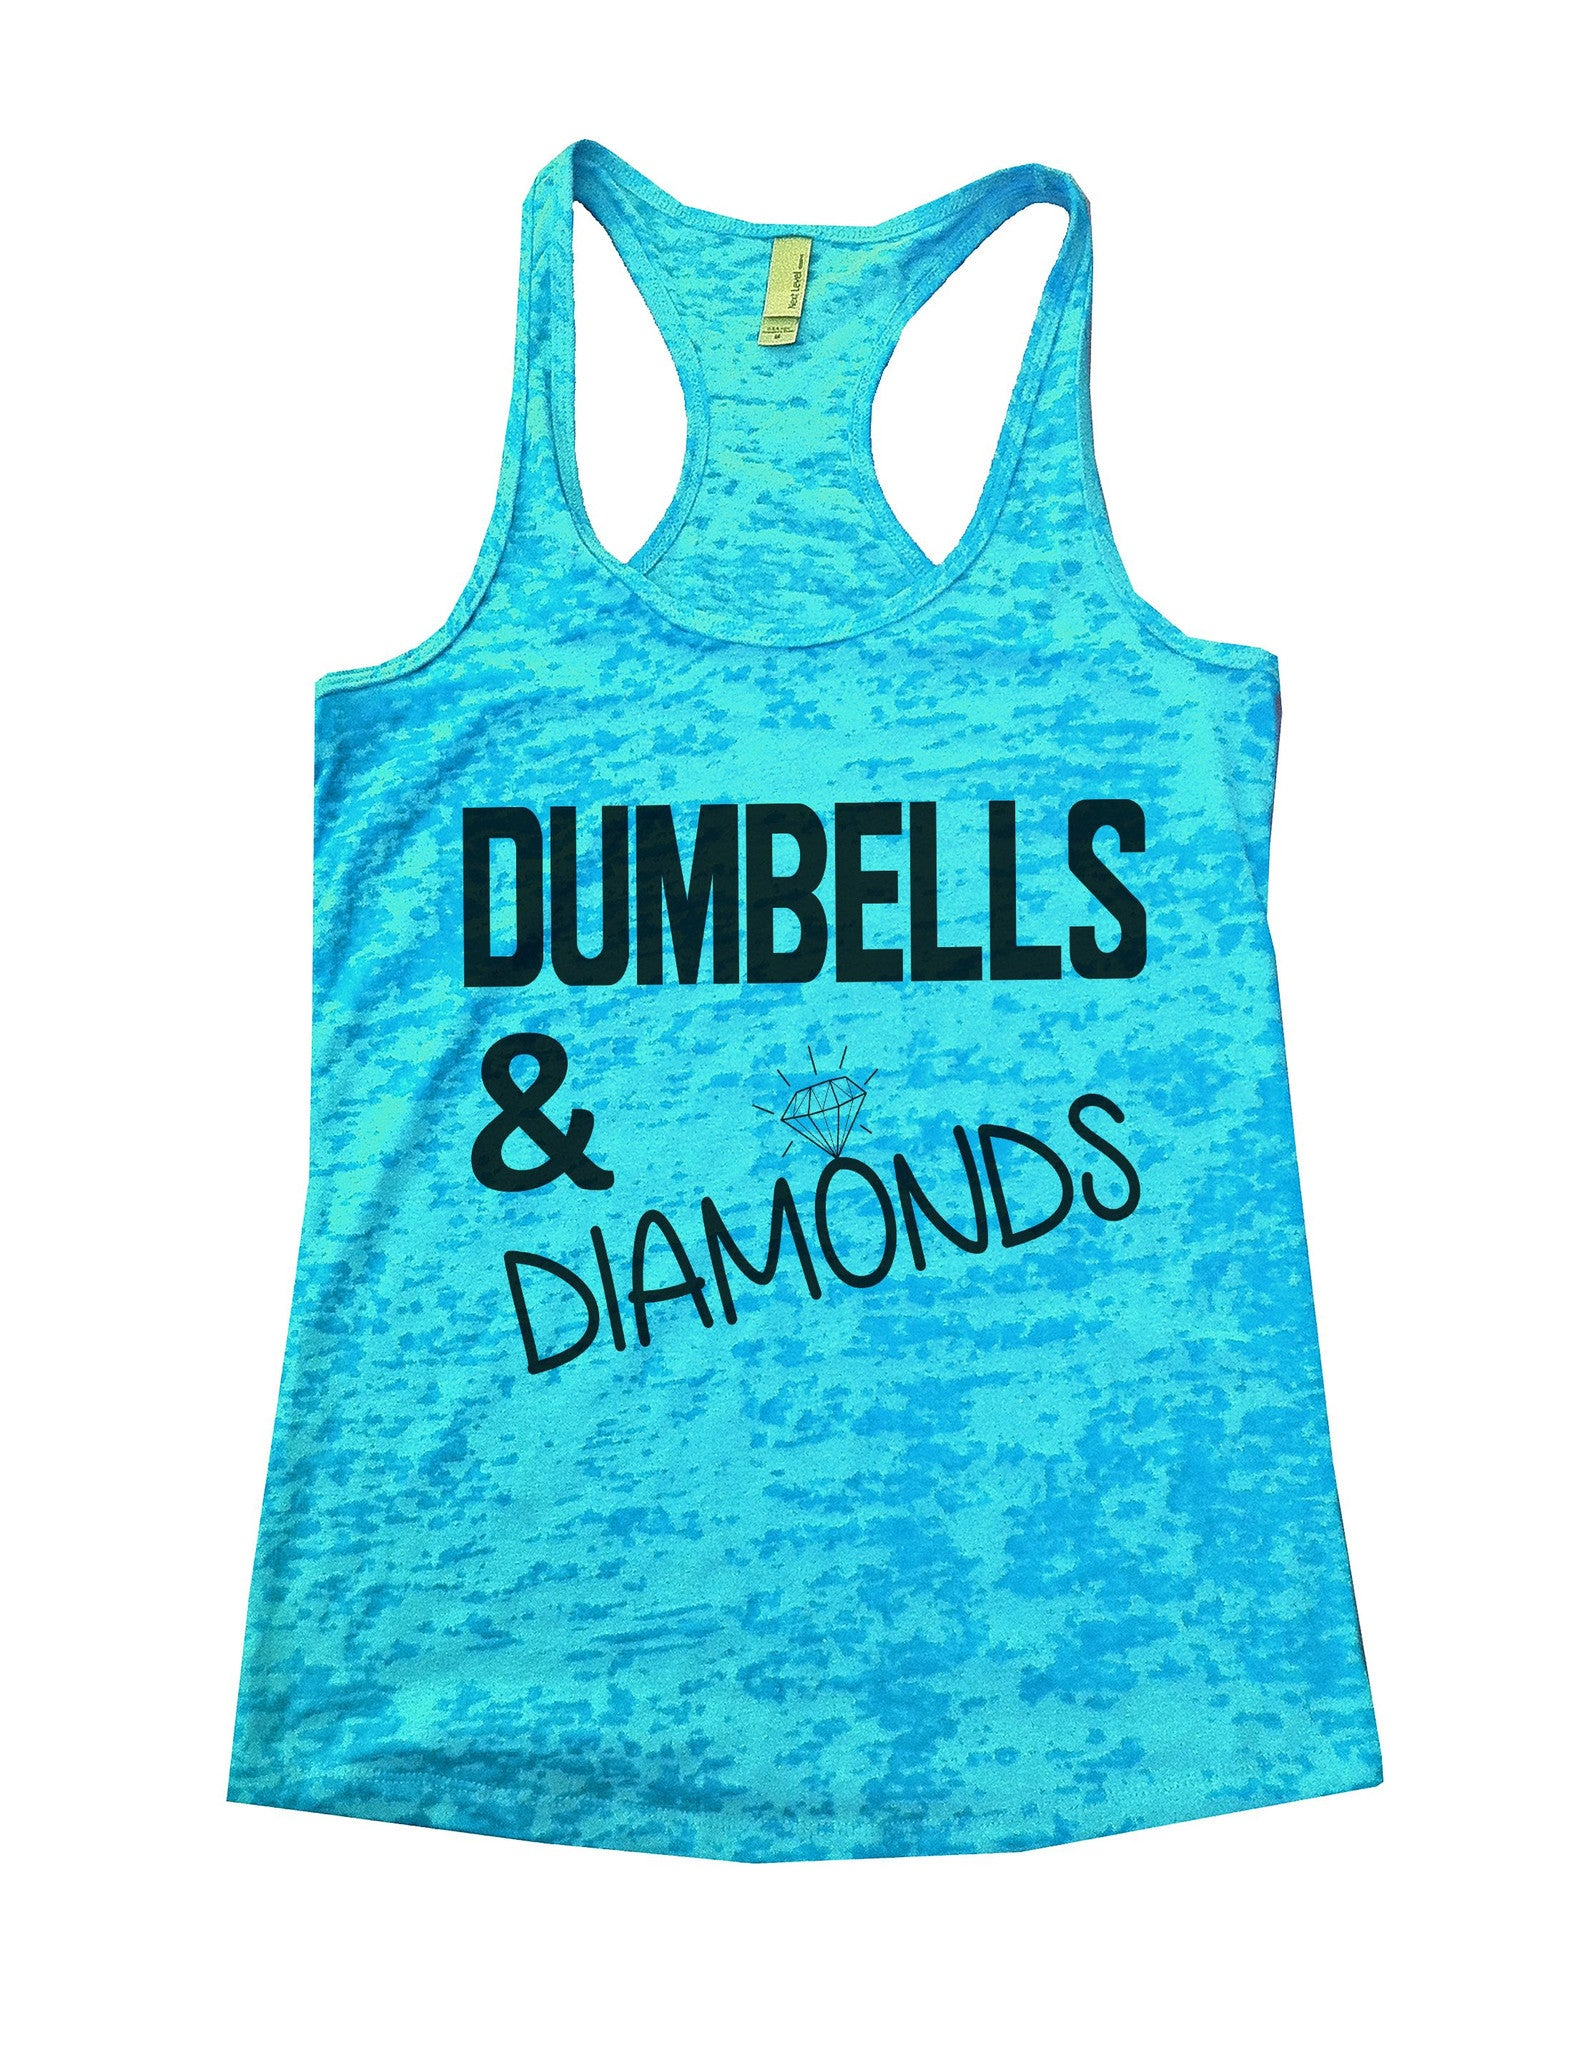 Dumbells & Diamonds Burnout Tank Top By BurnoutTankTops.com - 692 - Funny Shirts Tank Tops Burnouts and Triblends  - 2